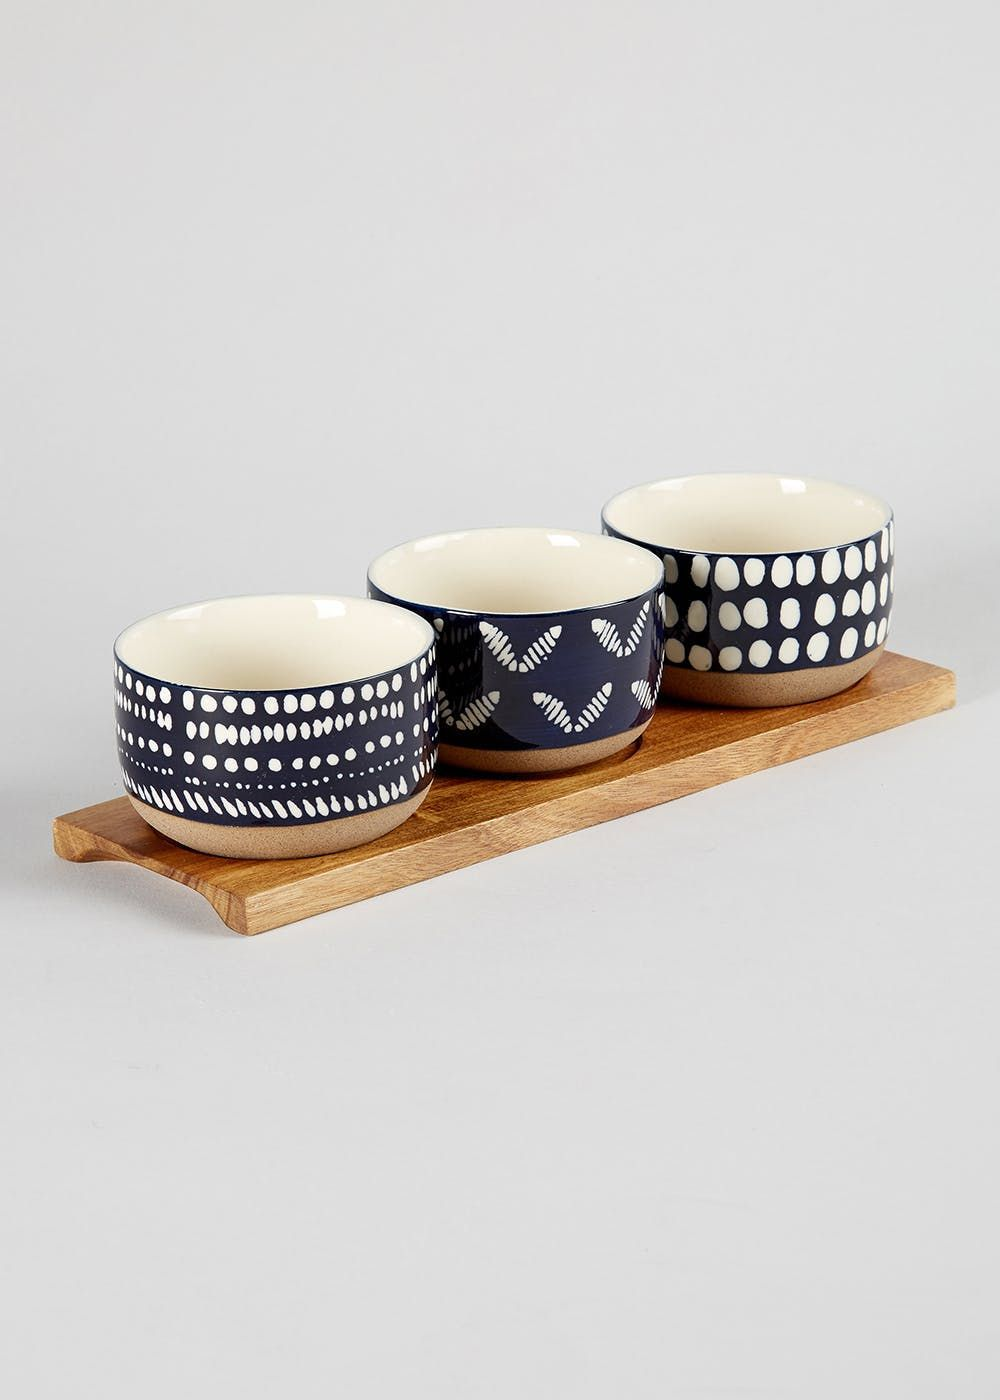 Ceramic Bowl Set (9cm x 6cm) – Navy  Ceramic Bowl Set (9cm x 6cm) – Navy  #6cm #9cm #bowl #Ceramic #Navy #Set